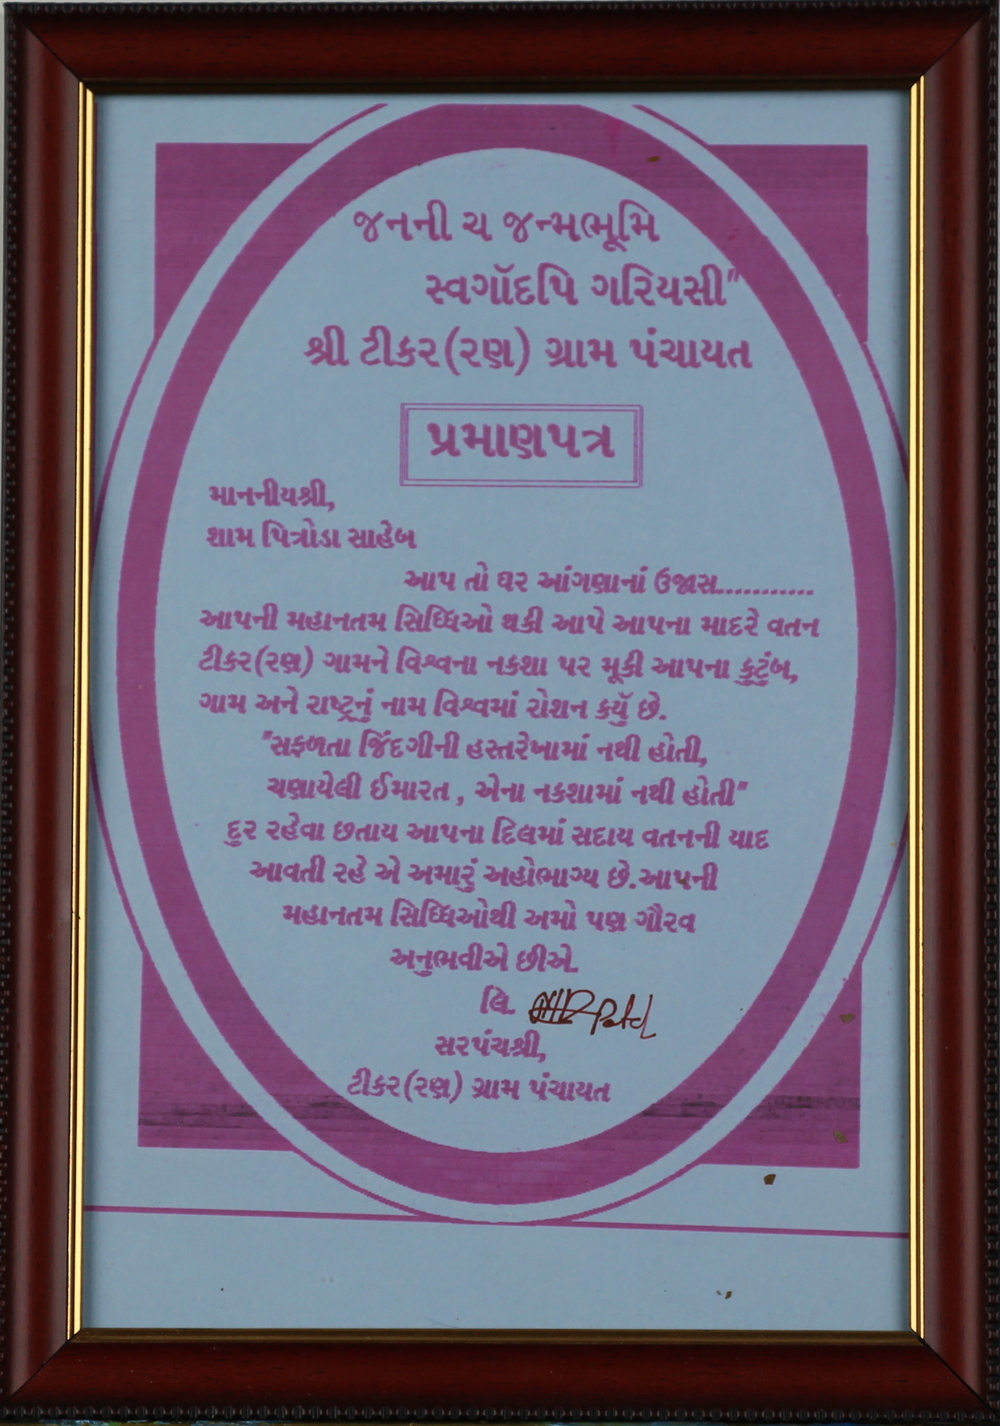 Award of Appreciation, Gram Panchayat Tikar